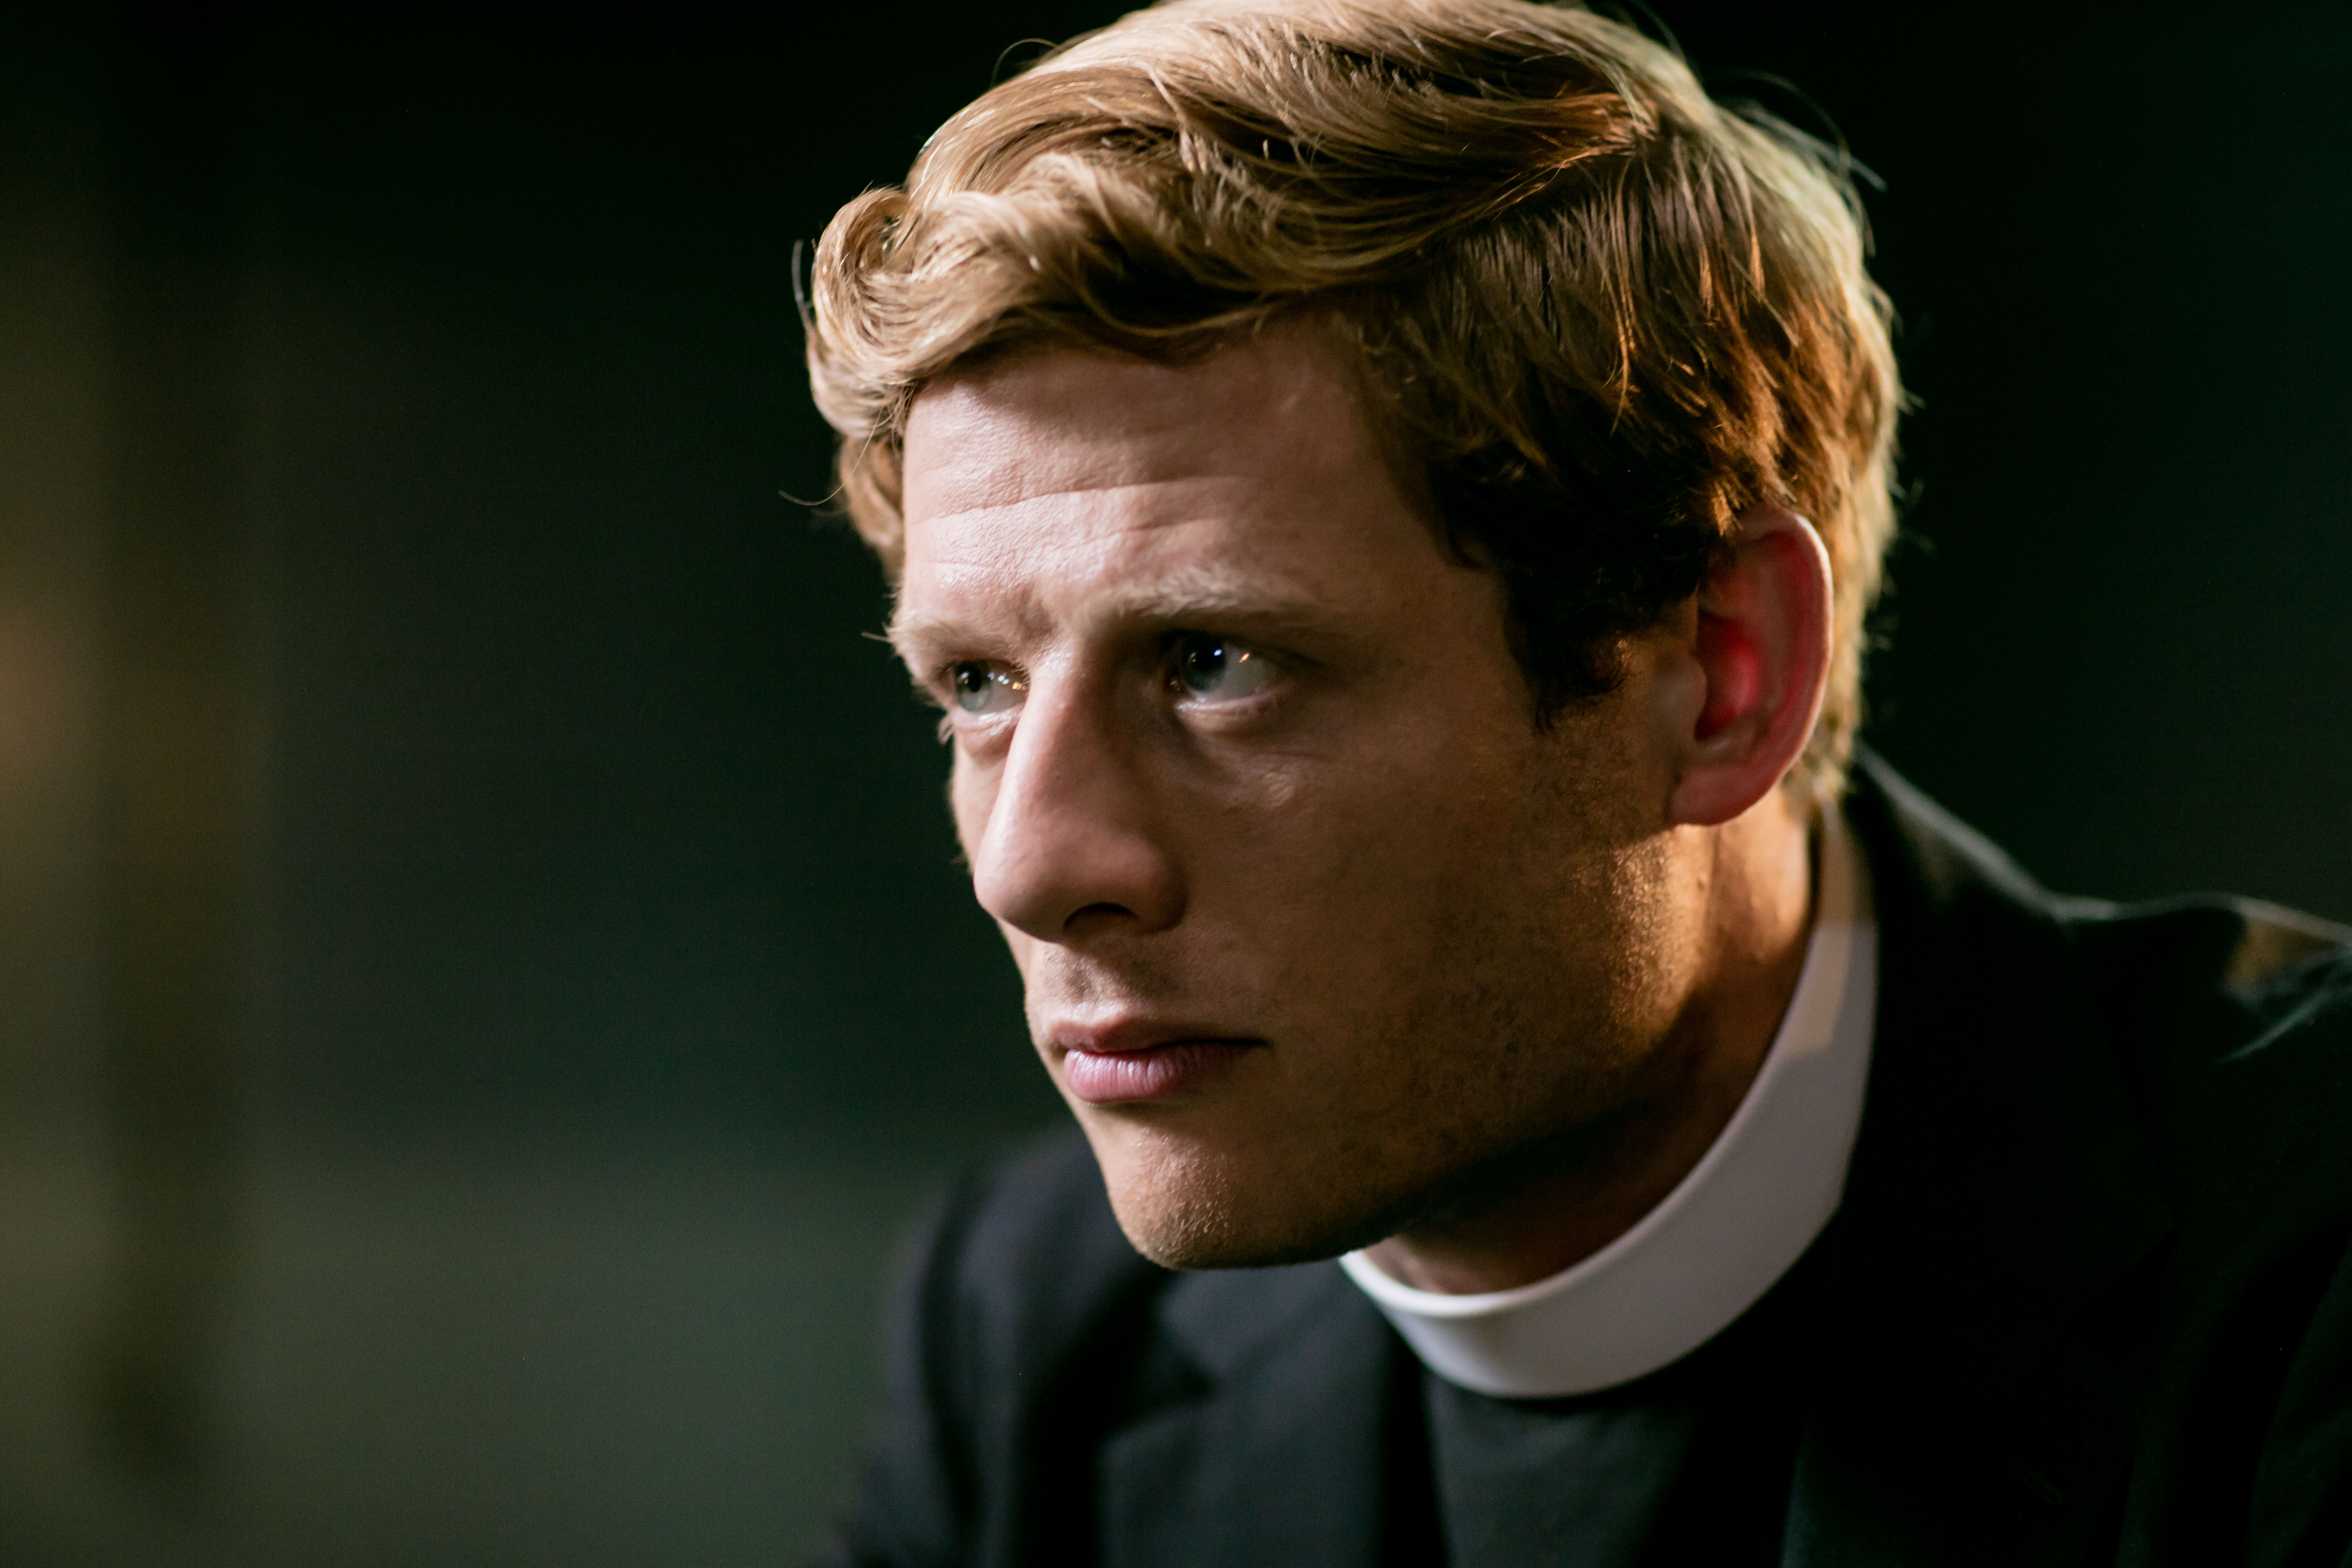 Granchester series 4 ep 2 review: James Norton's Sidney makes unbelievably sudden exit